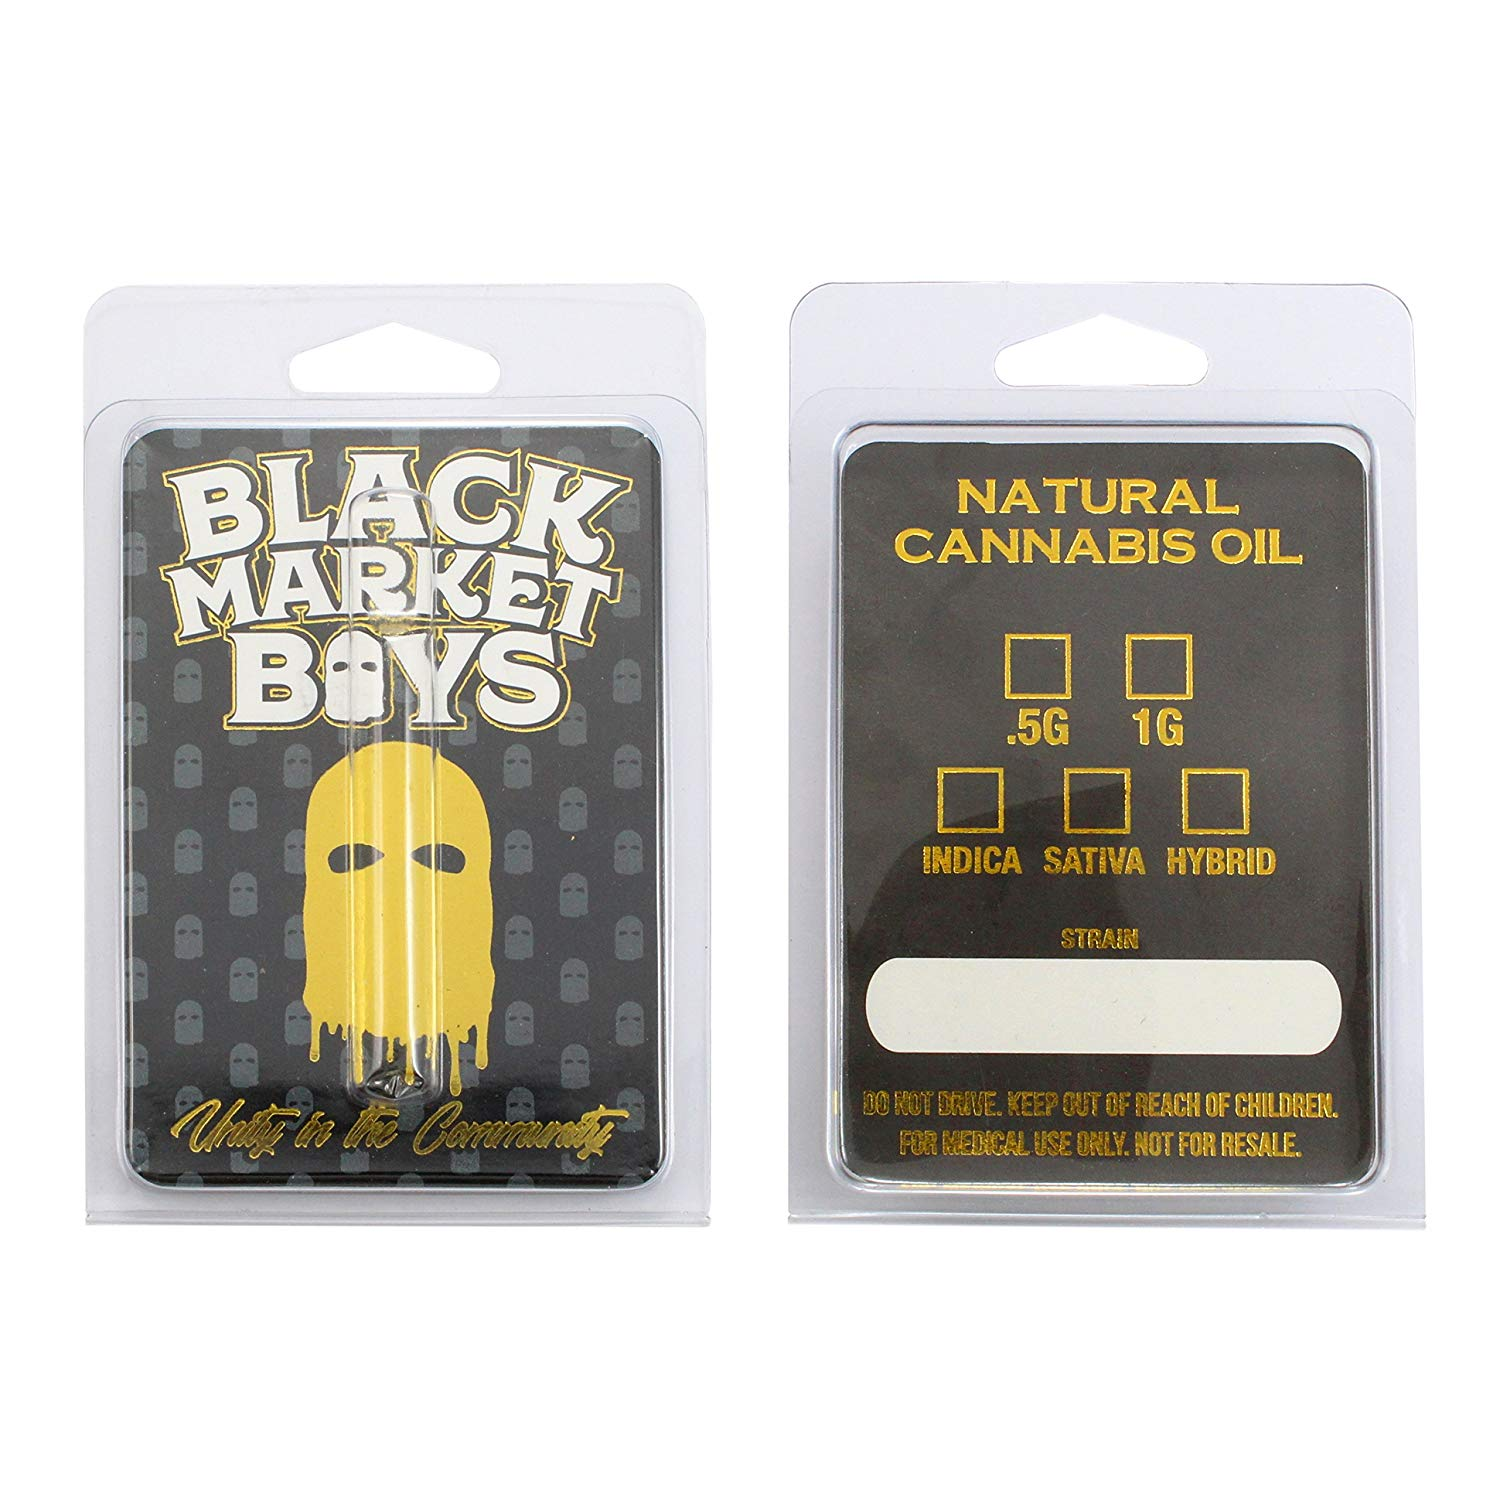 Black Market Boys Empty Oil Distillate Clamshells Child Resistant Packaging Canabis Compliant Shatter Labels CL-006 0